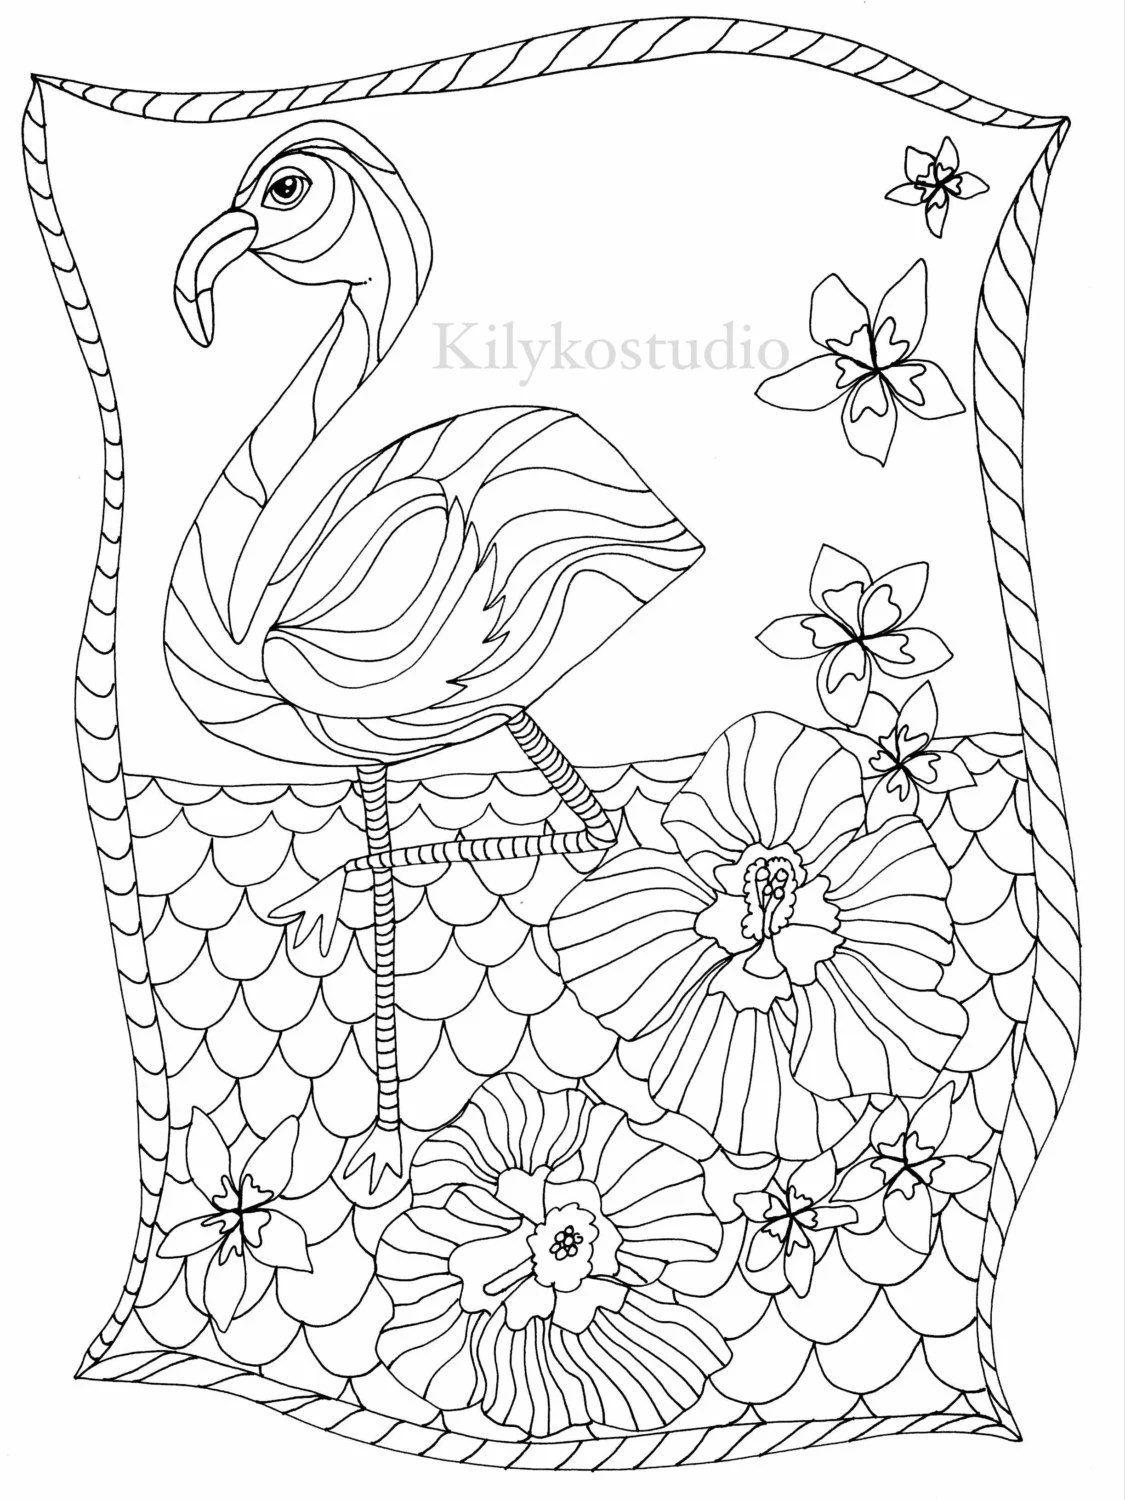 Flamingo Adult Coloring Page Instant Digital Download From